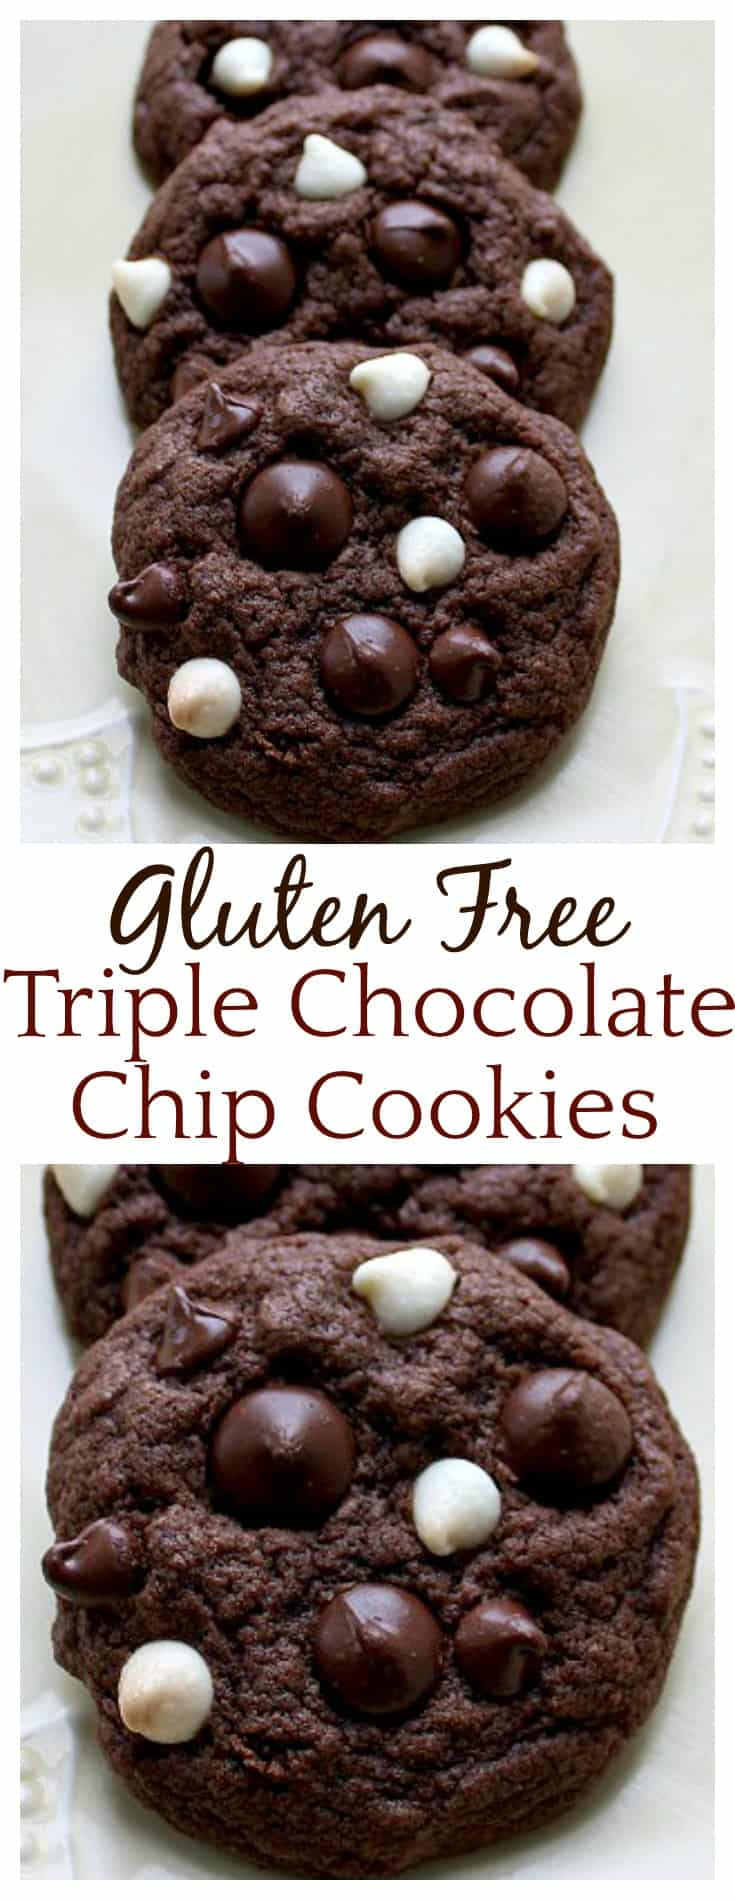 The best gluten free chocolate cookie recipe I've tried yet! Milk chocolate, dark chocolate, and white chocolate chips are loaded into these gluten free chocolate cookies - for serious chocolate lovers!